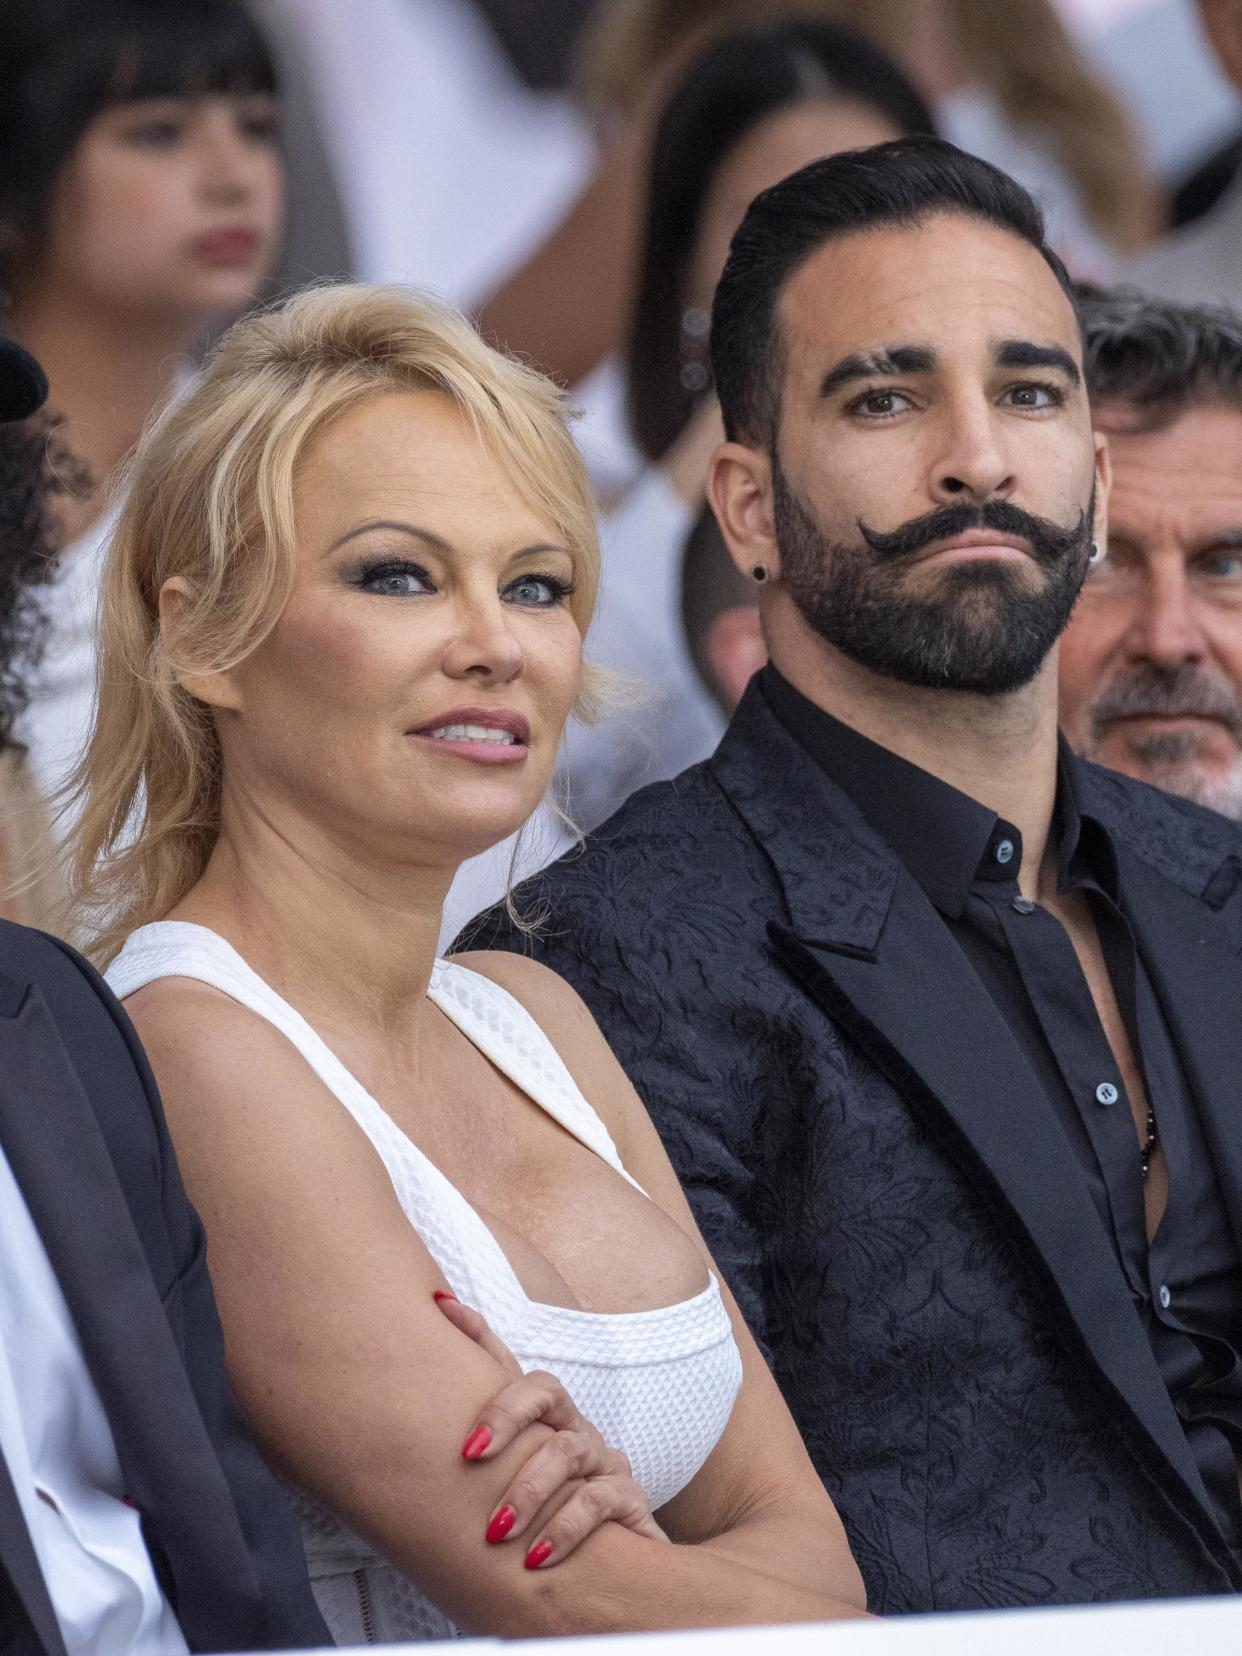 Pamela Anderson and Adil Rami on May 24. (Photo: Arnold Jerocki/Getty Images)